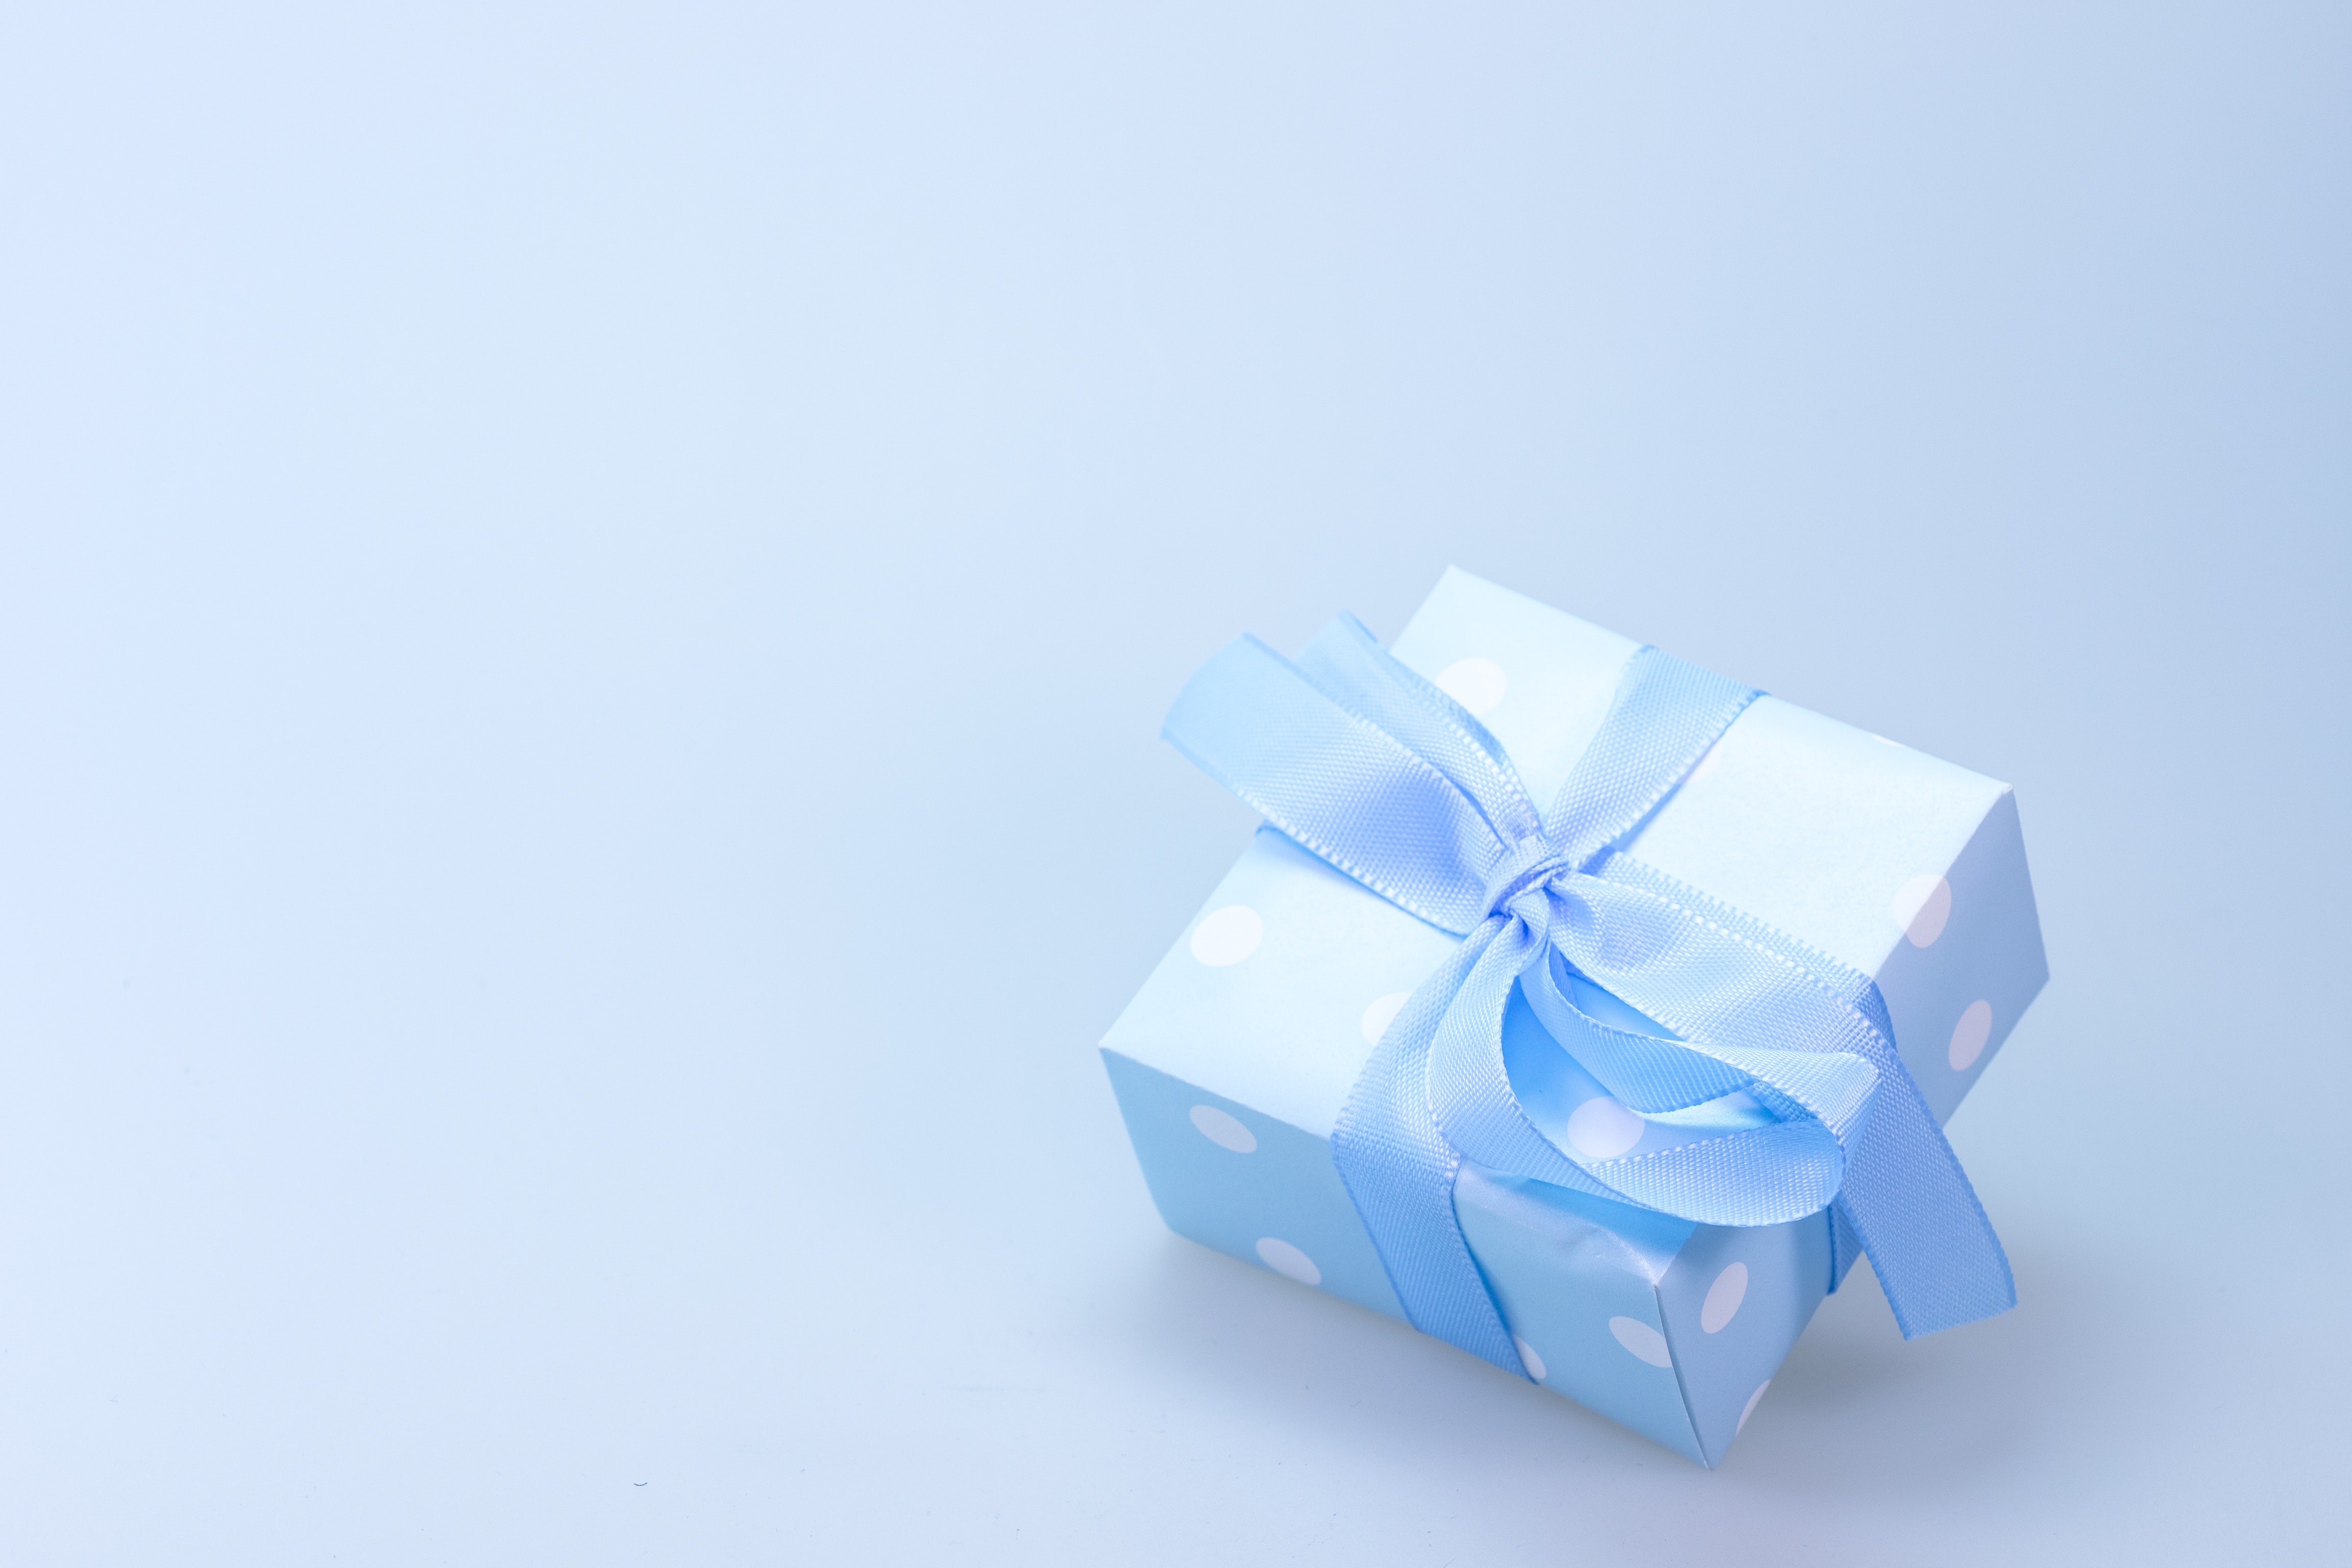 Blue and White Polka Dot Gift Box With Blue Ribbon, Ribbon, Present, Package, Blue, HQ Photo